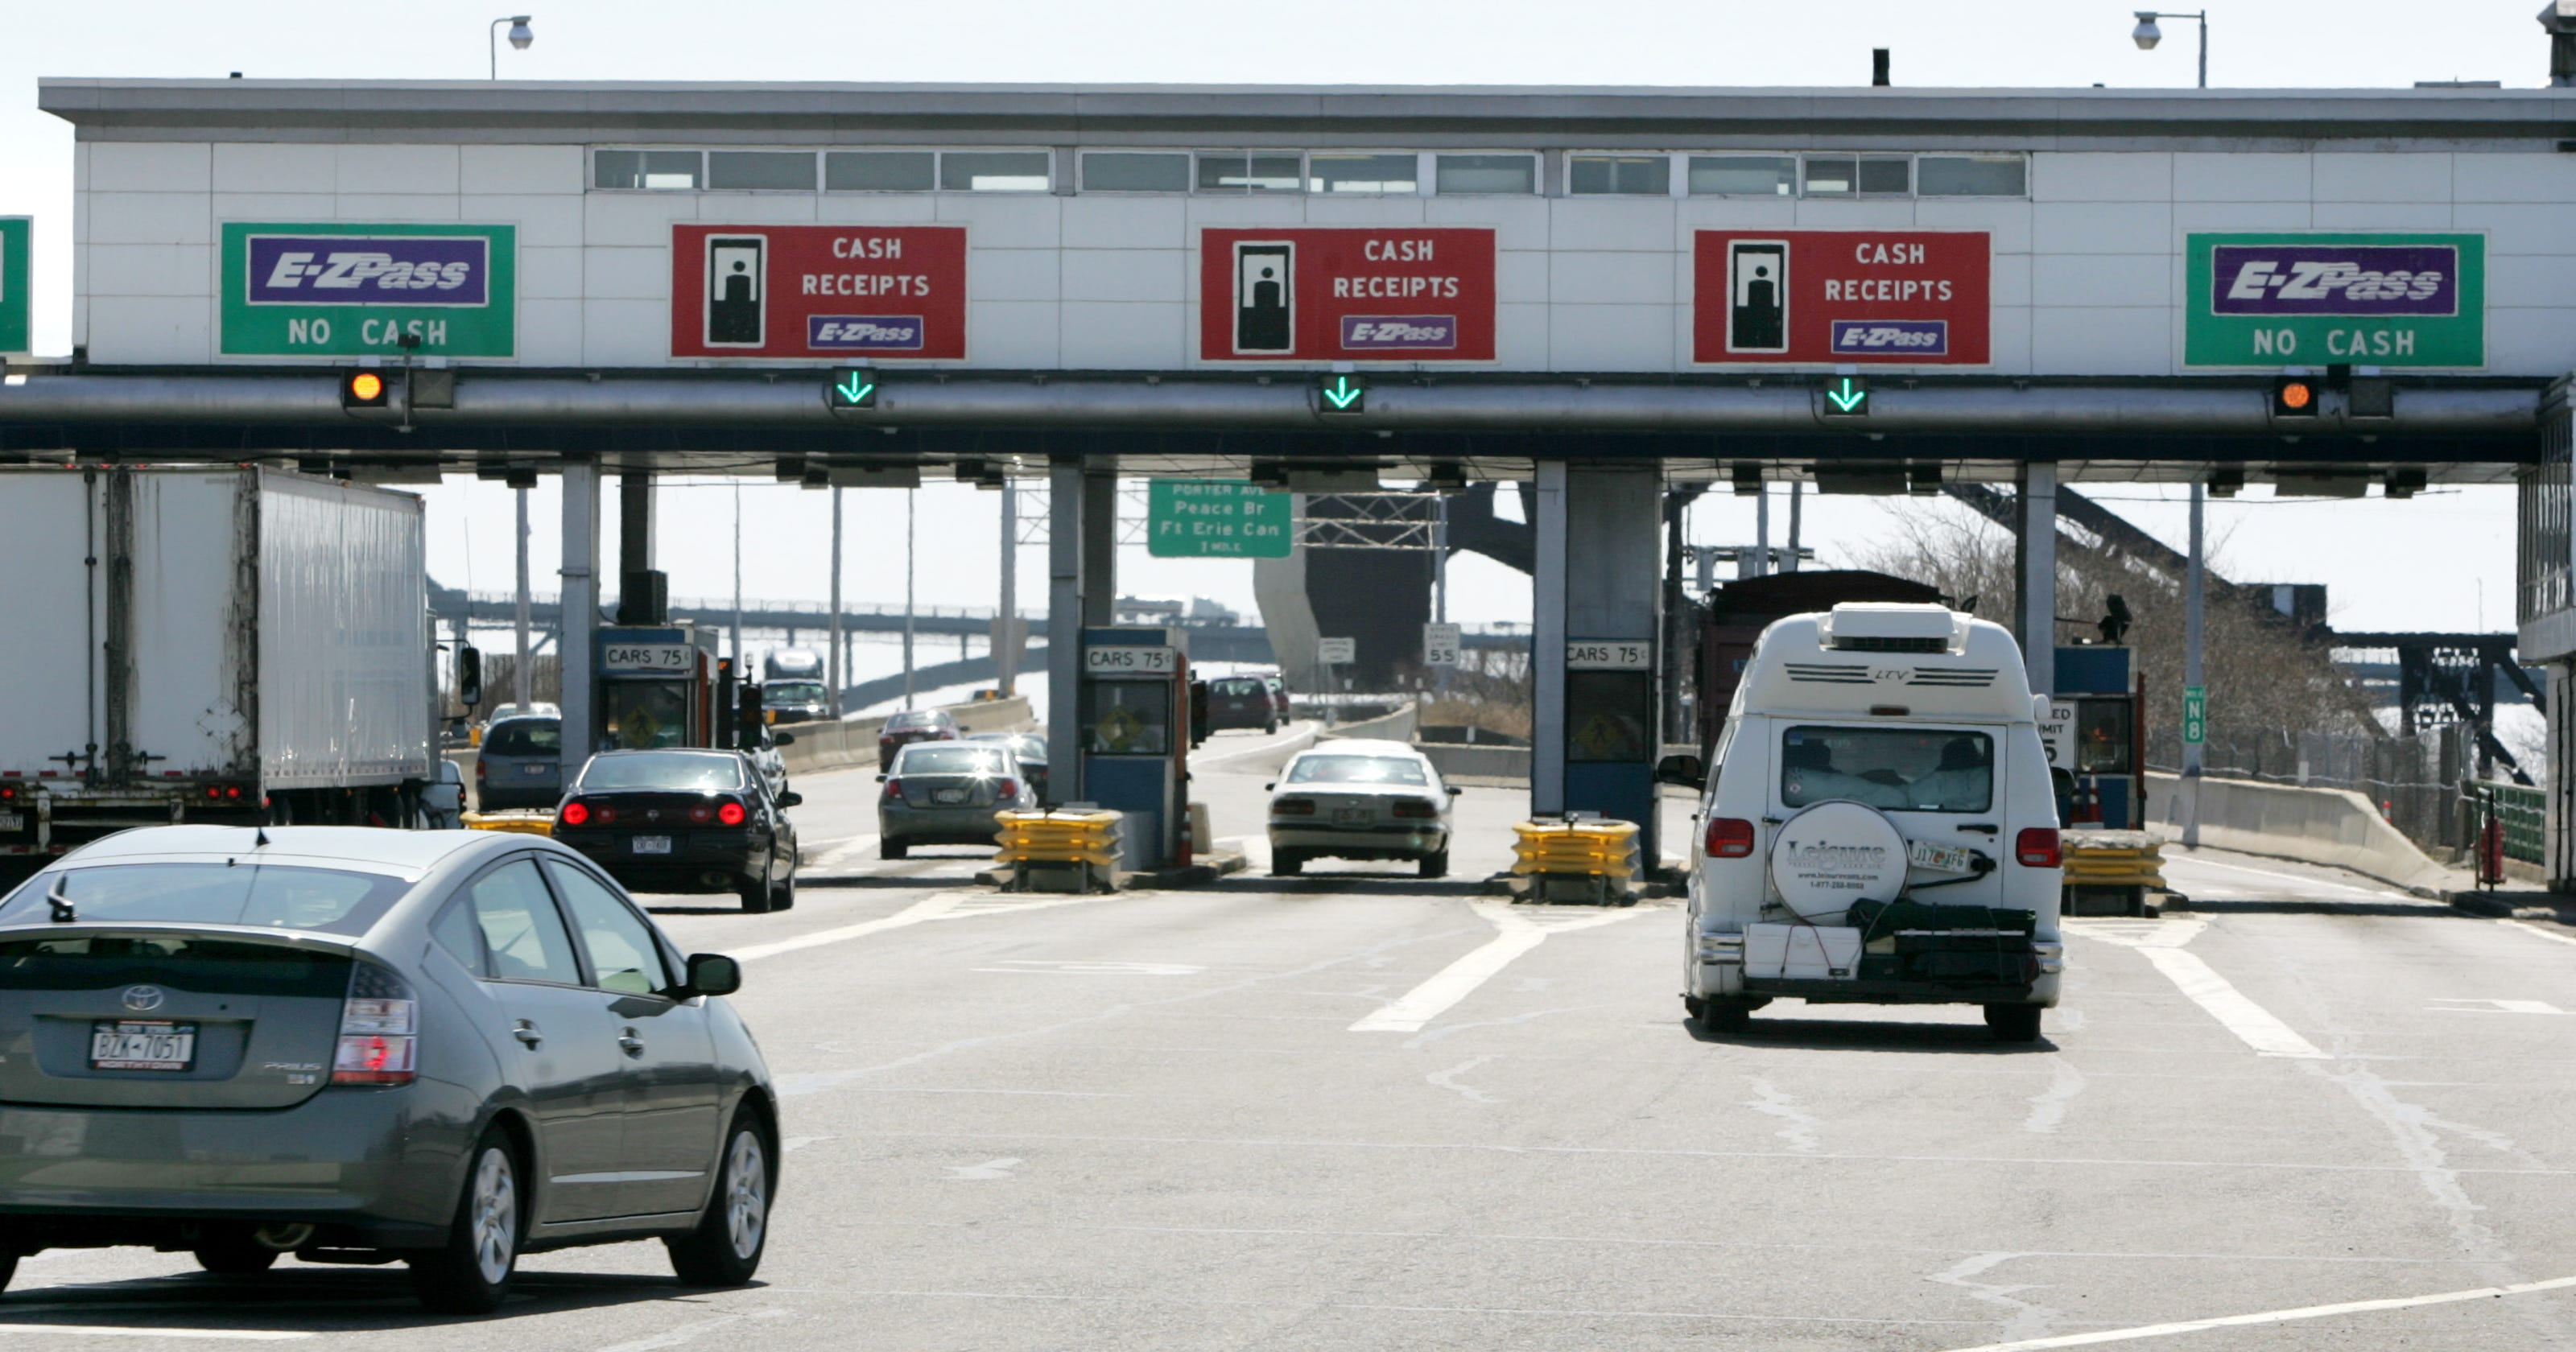 Thruway to get cashless tolls by 2020, Gov  Andrew Cuomo says